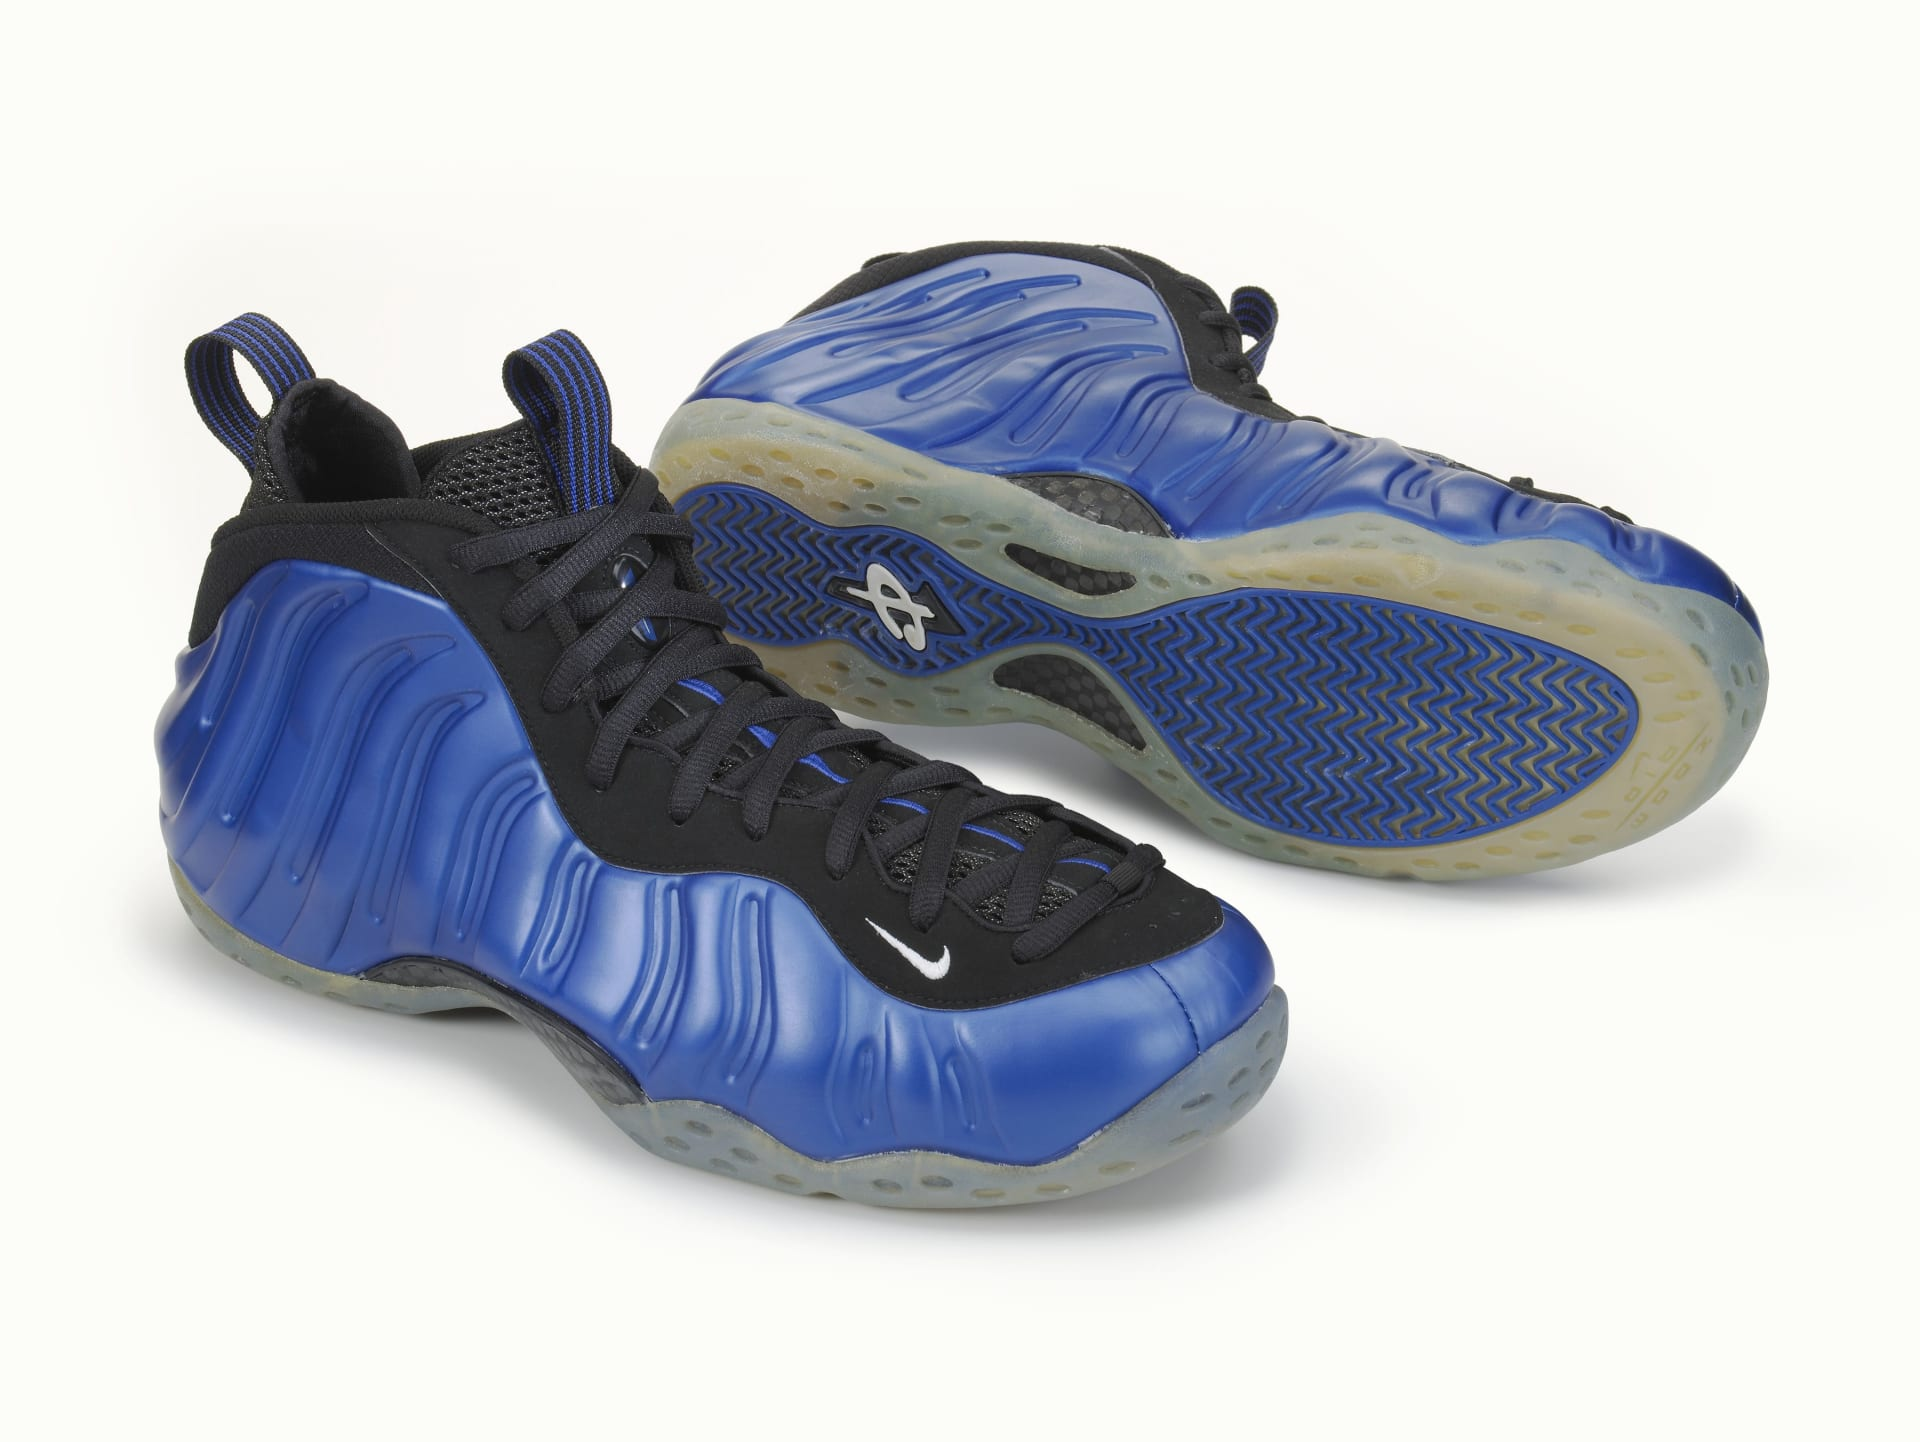 113f9c0fcf62 20 Best Signature Sneaker Lines of All Time